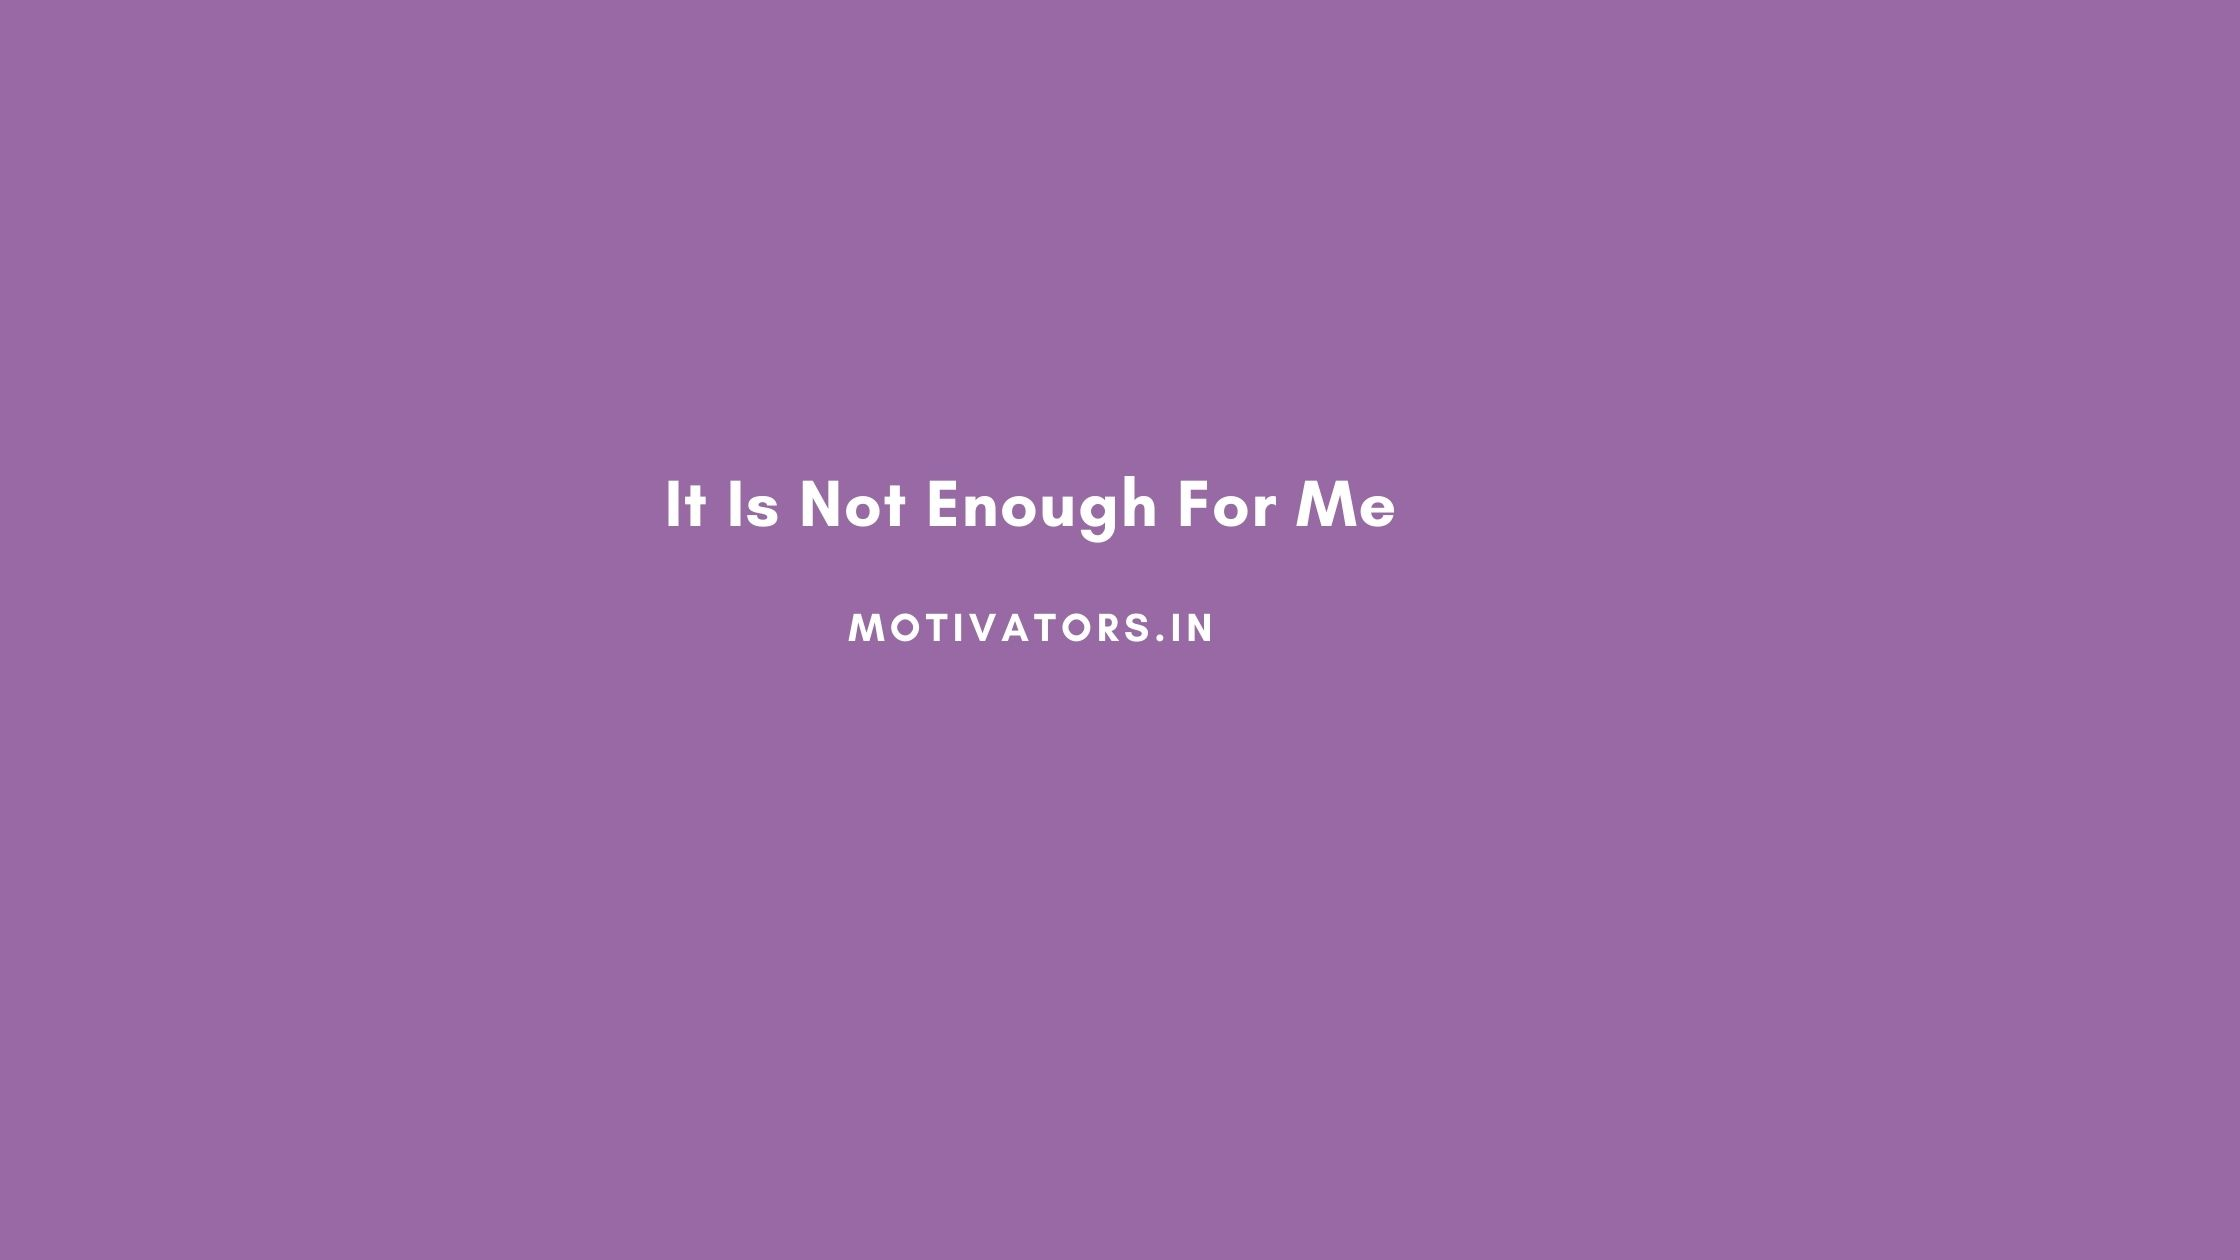 It Is Not Enough For Me